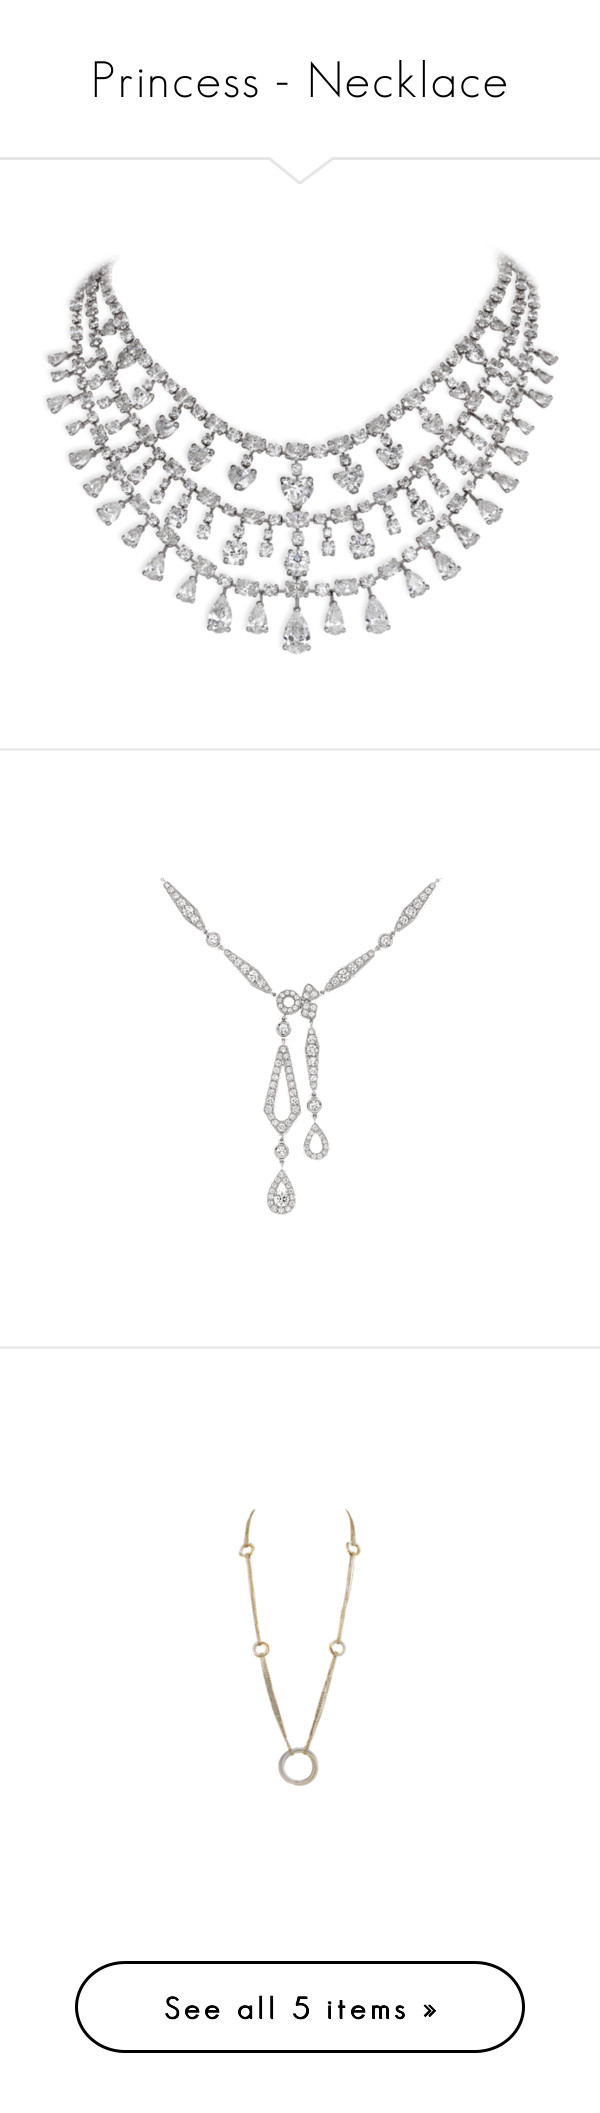 """""""Princess - Necklace"""" by gracebeckett ❤ liked on Polyvore featuring jewelry, necklaces, david morris jewelry, david morris, white gold jewelry, white gold necklace, white gold jewellery, kate middleton, cartier jewellery and cartier necklace"""